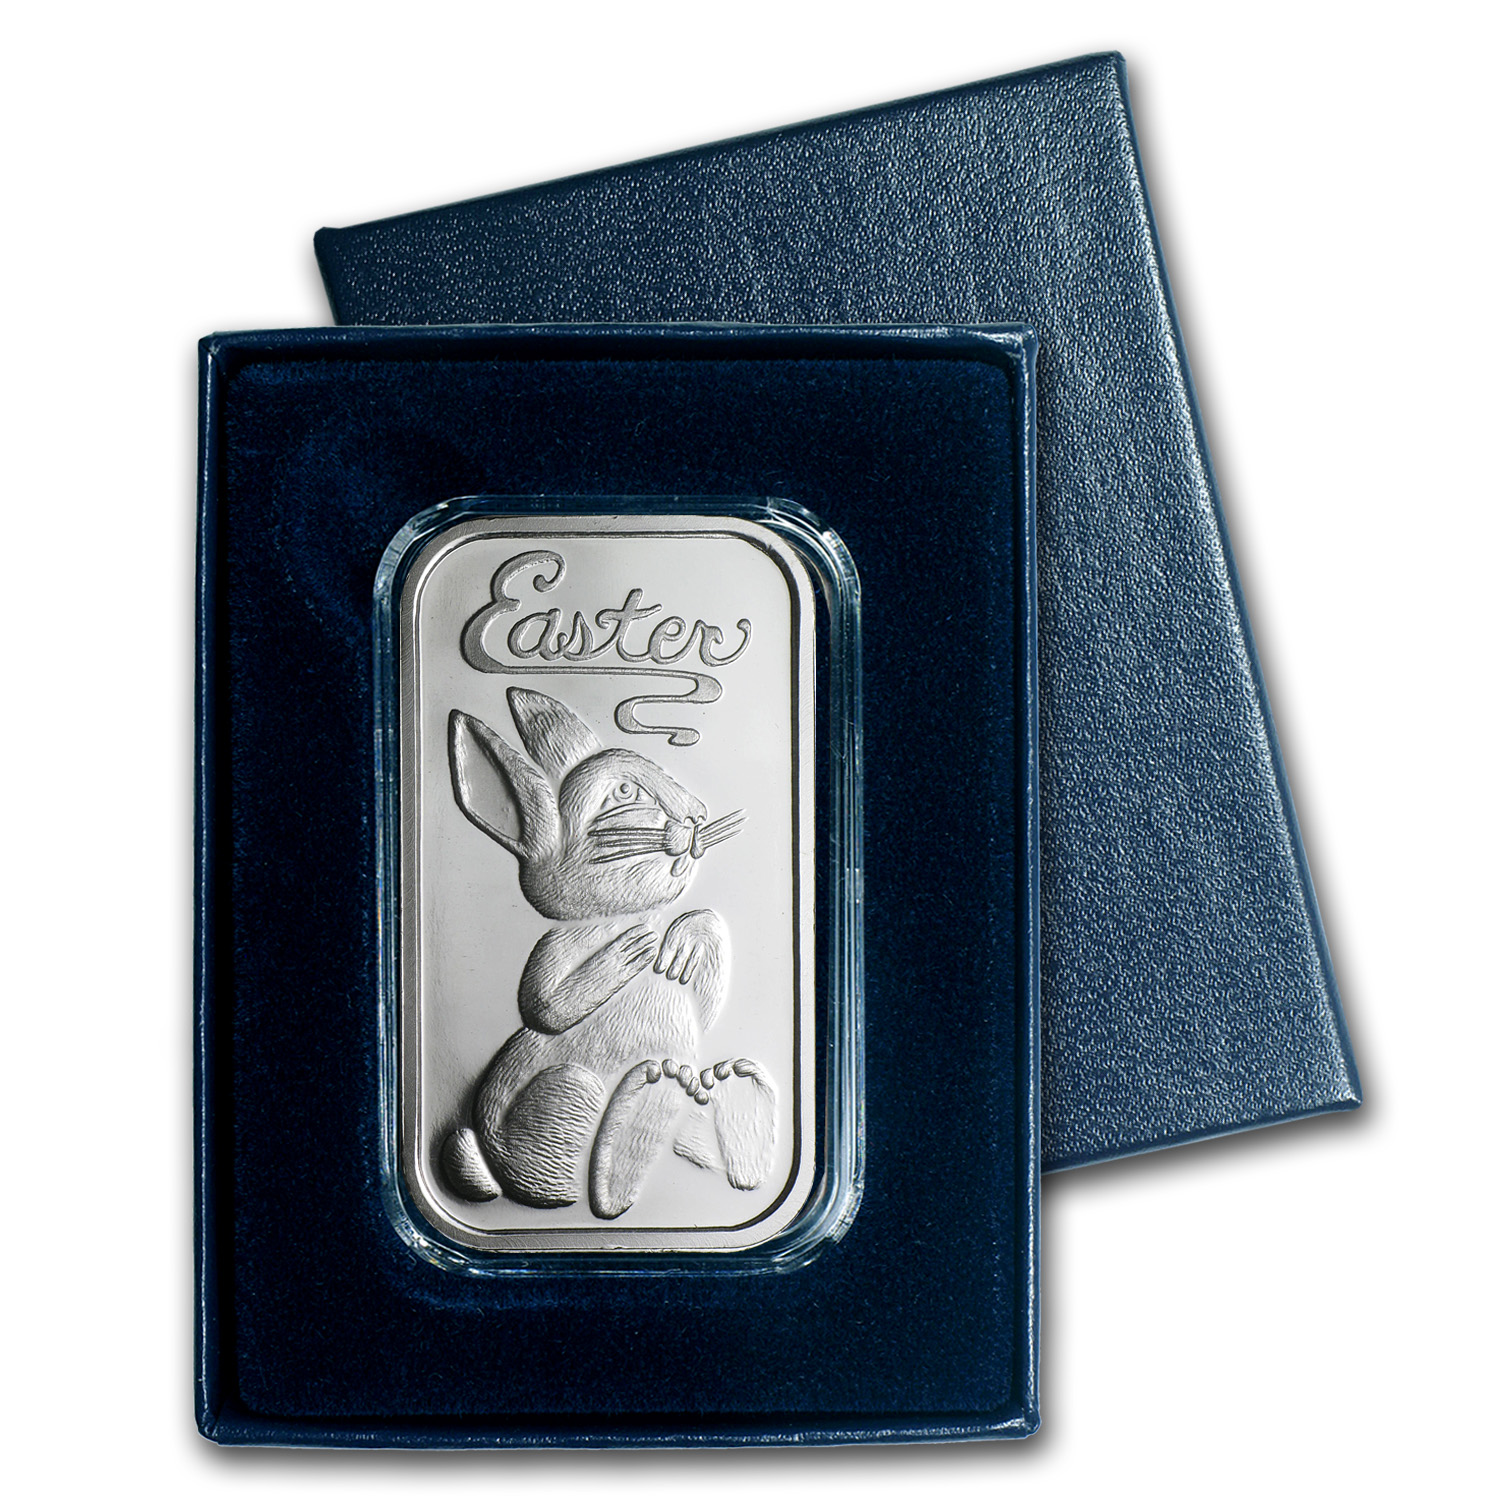 1 oz Silver Bars - Easter (w/Box & Capsule)